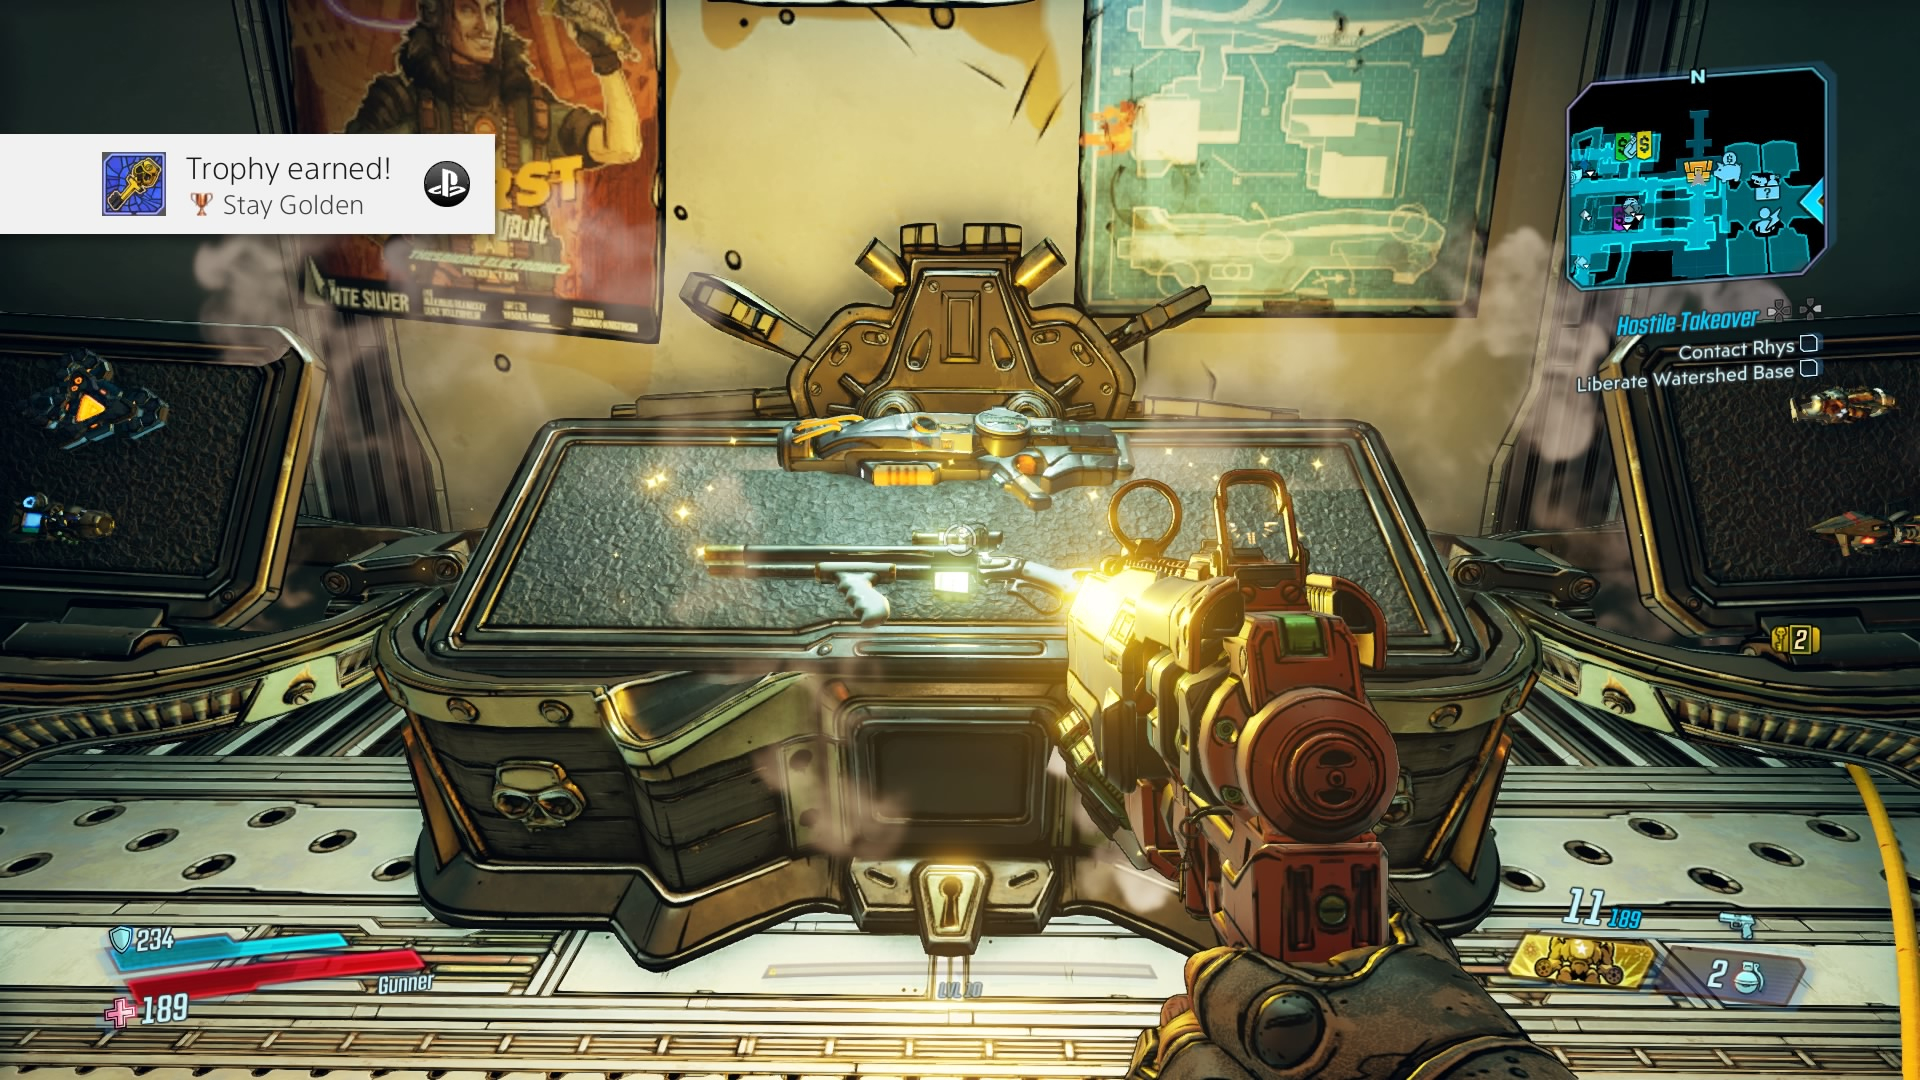 Every Borderlands 3 Shift Code You Need To Unlock The Golden